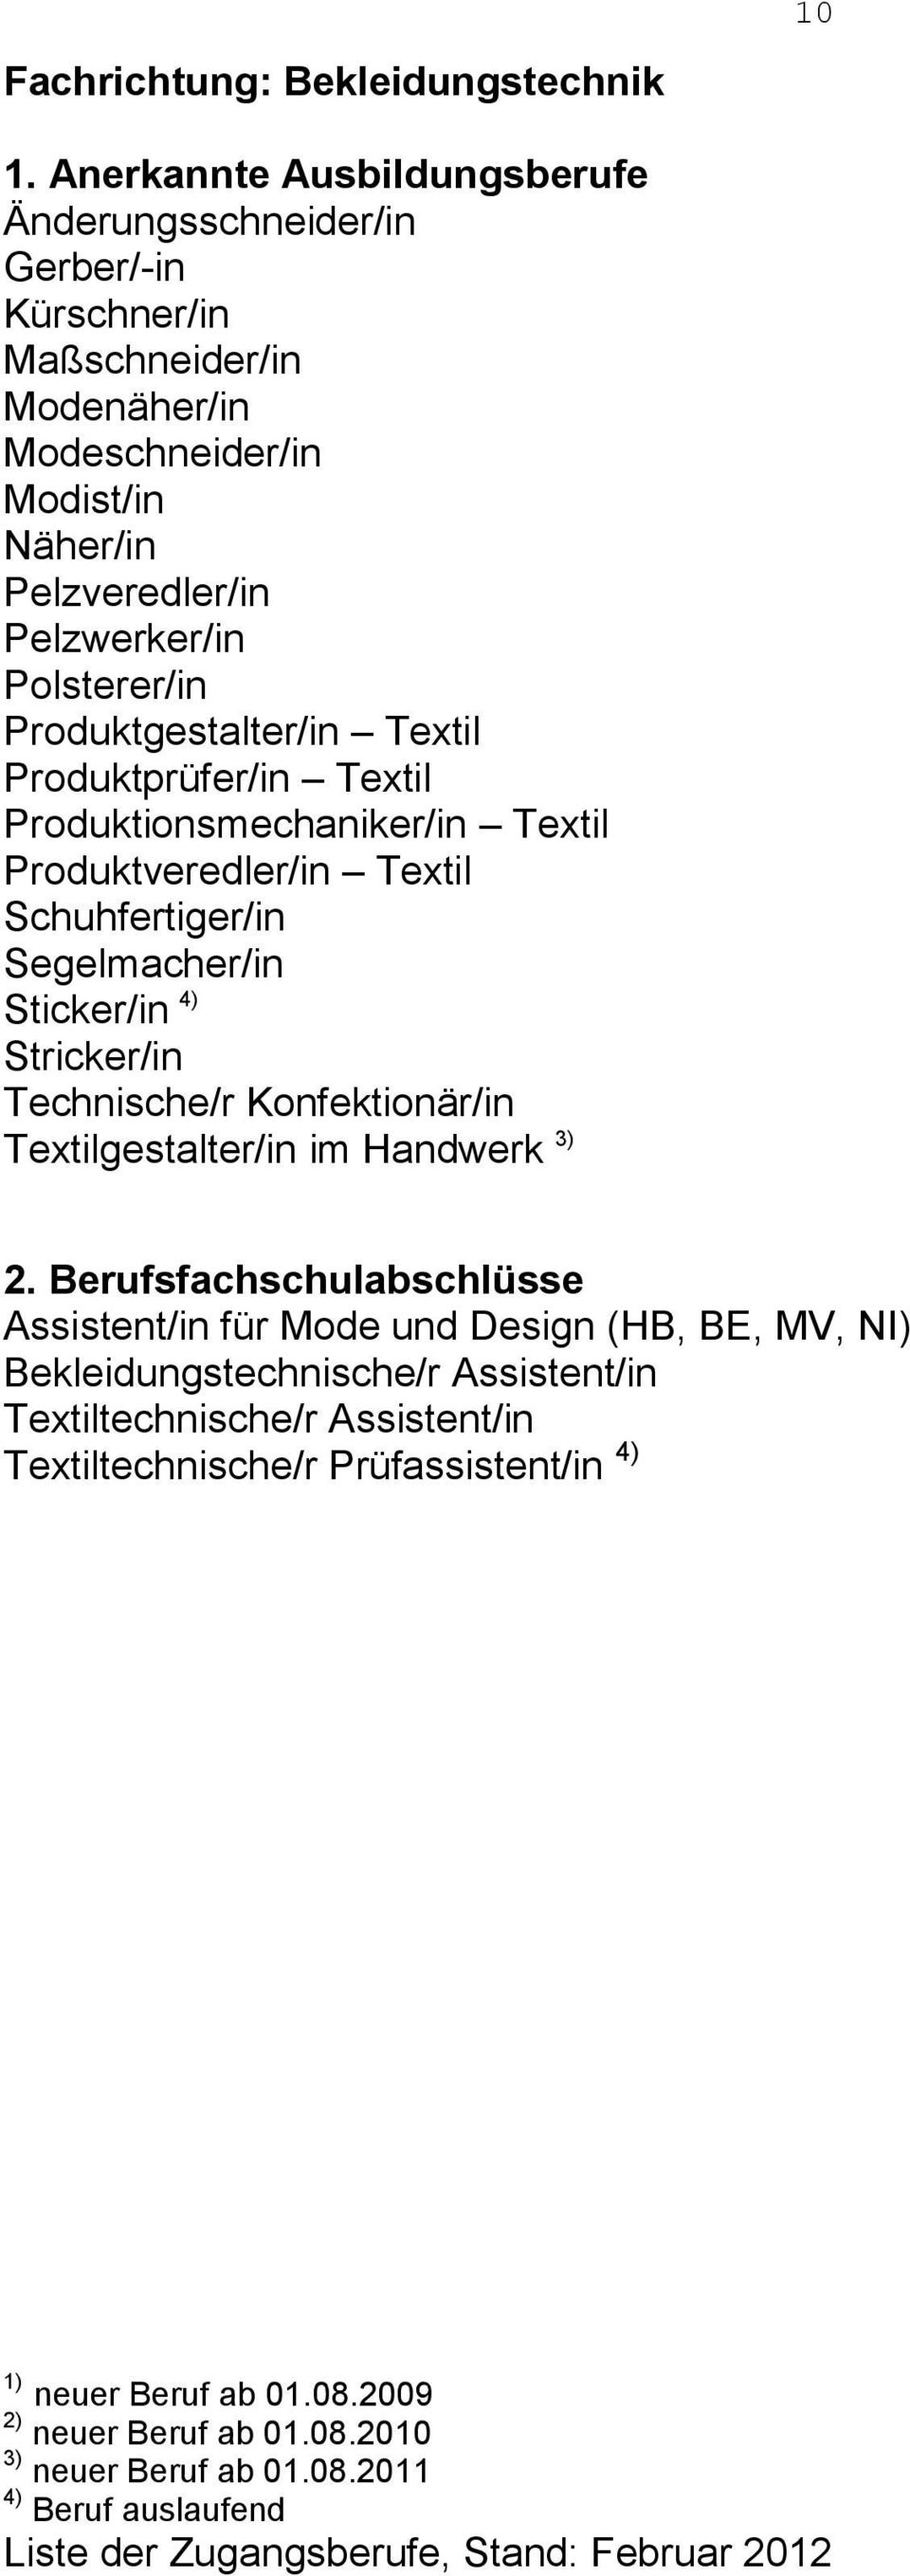 Produktveredler/in Textil Schuhfertiger/in Segelmacher/in Sticker/in 4) Stricker/in Technische/r Konfektionär/in Textilgestalter/in im Handwerk